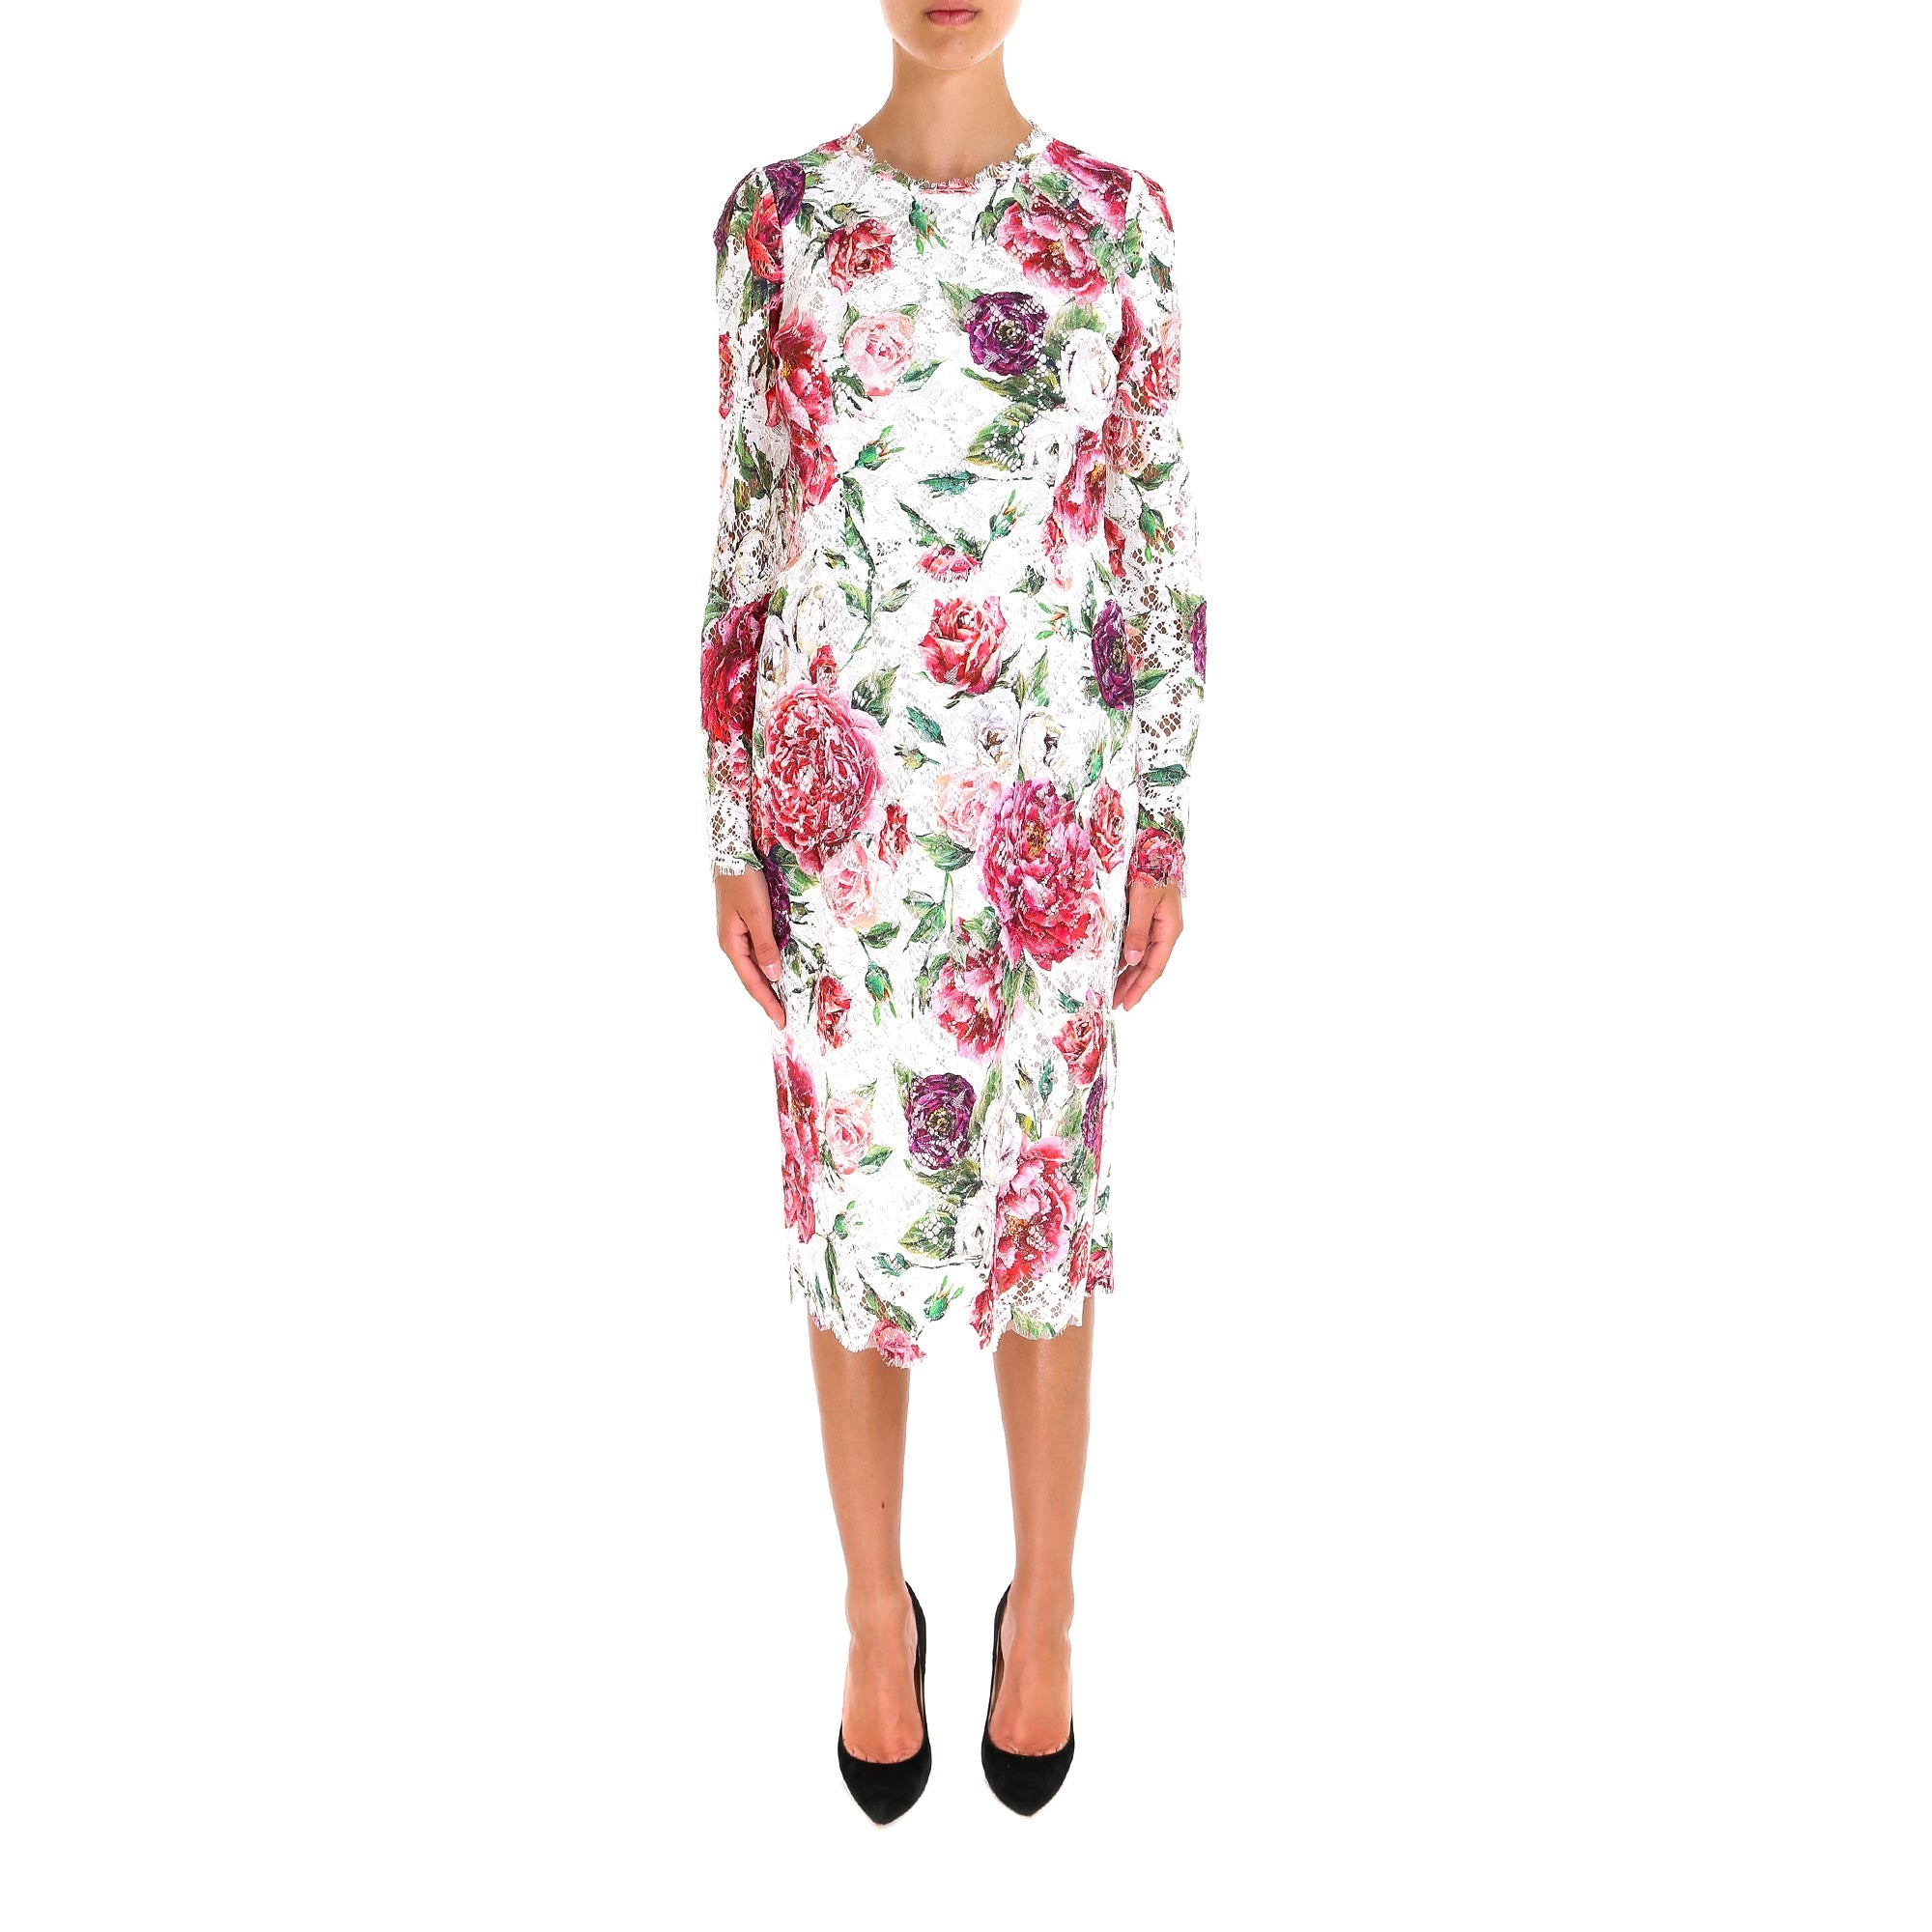 DOLCE & GABBANA LACE FLORAL MIDI DRESS